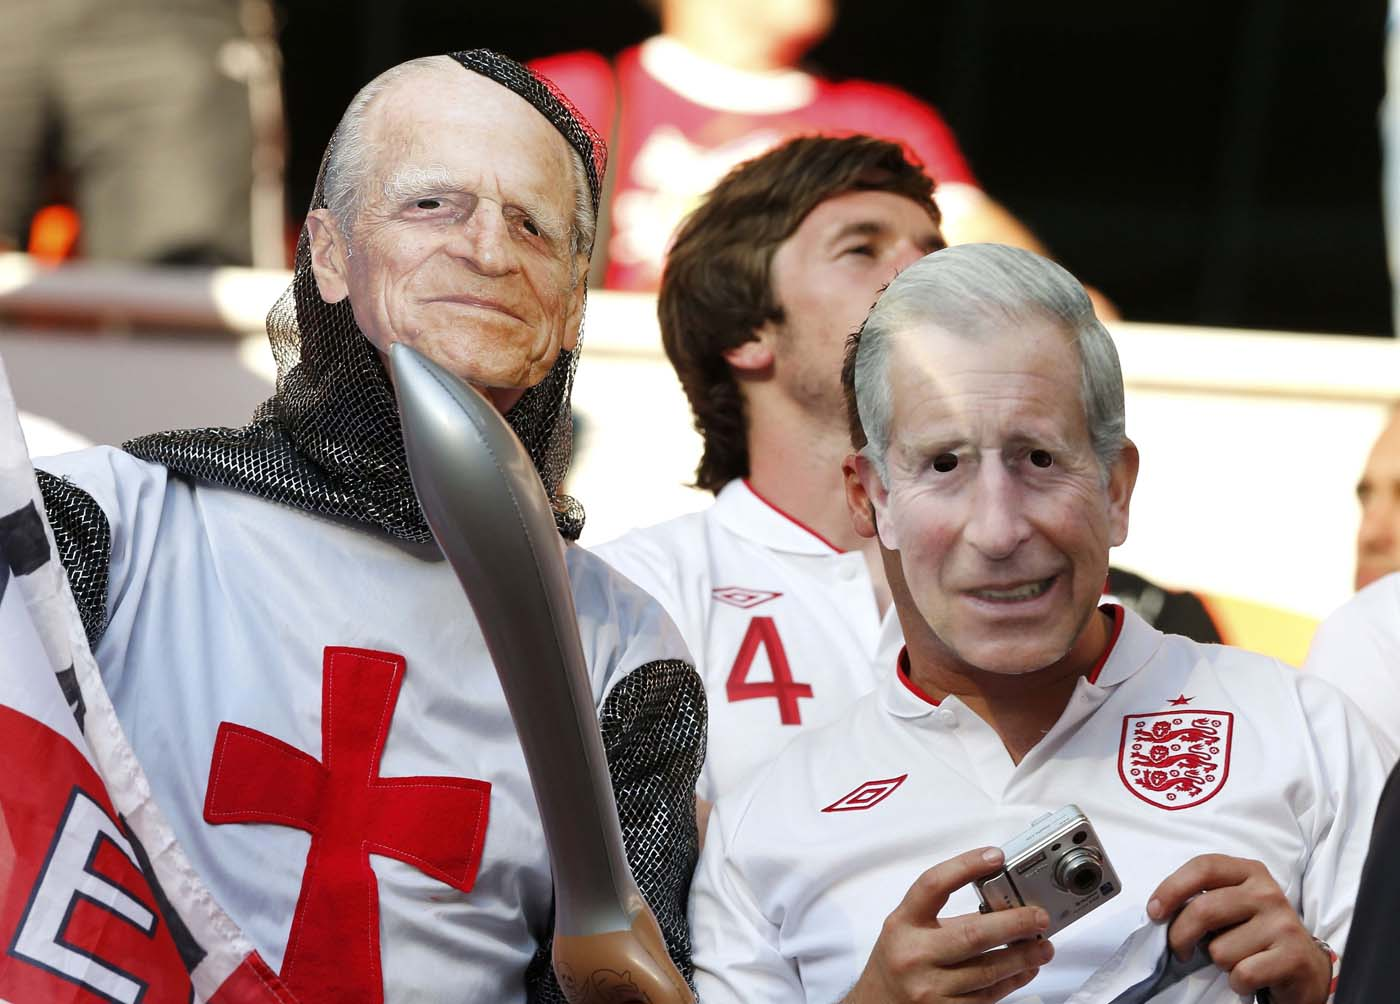 England's fans wear Prince Charles (R) and Prince Philipp masks as they cheer before Group D Euro 2012 soccer match against France at the Donbass Arena in Donetsk June 11, 2012. (Yves Herman/Reuters)